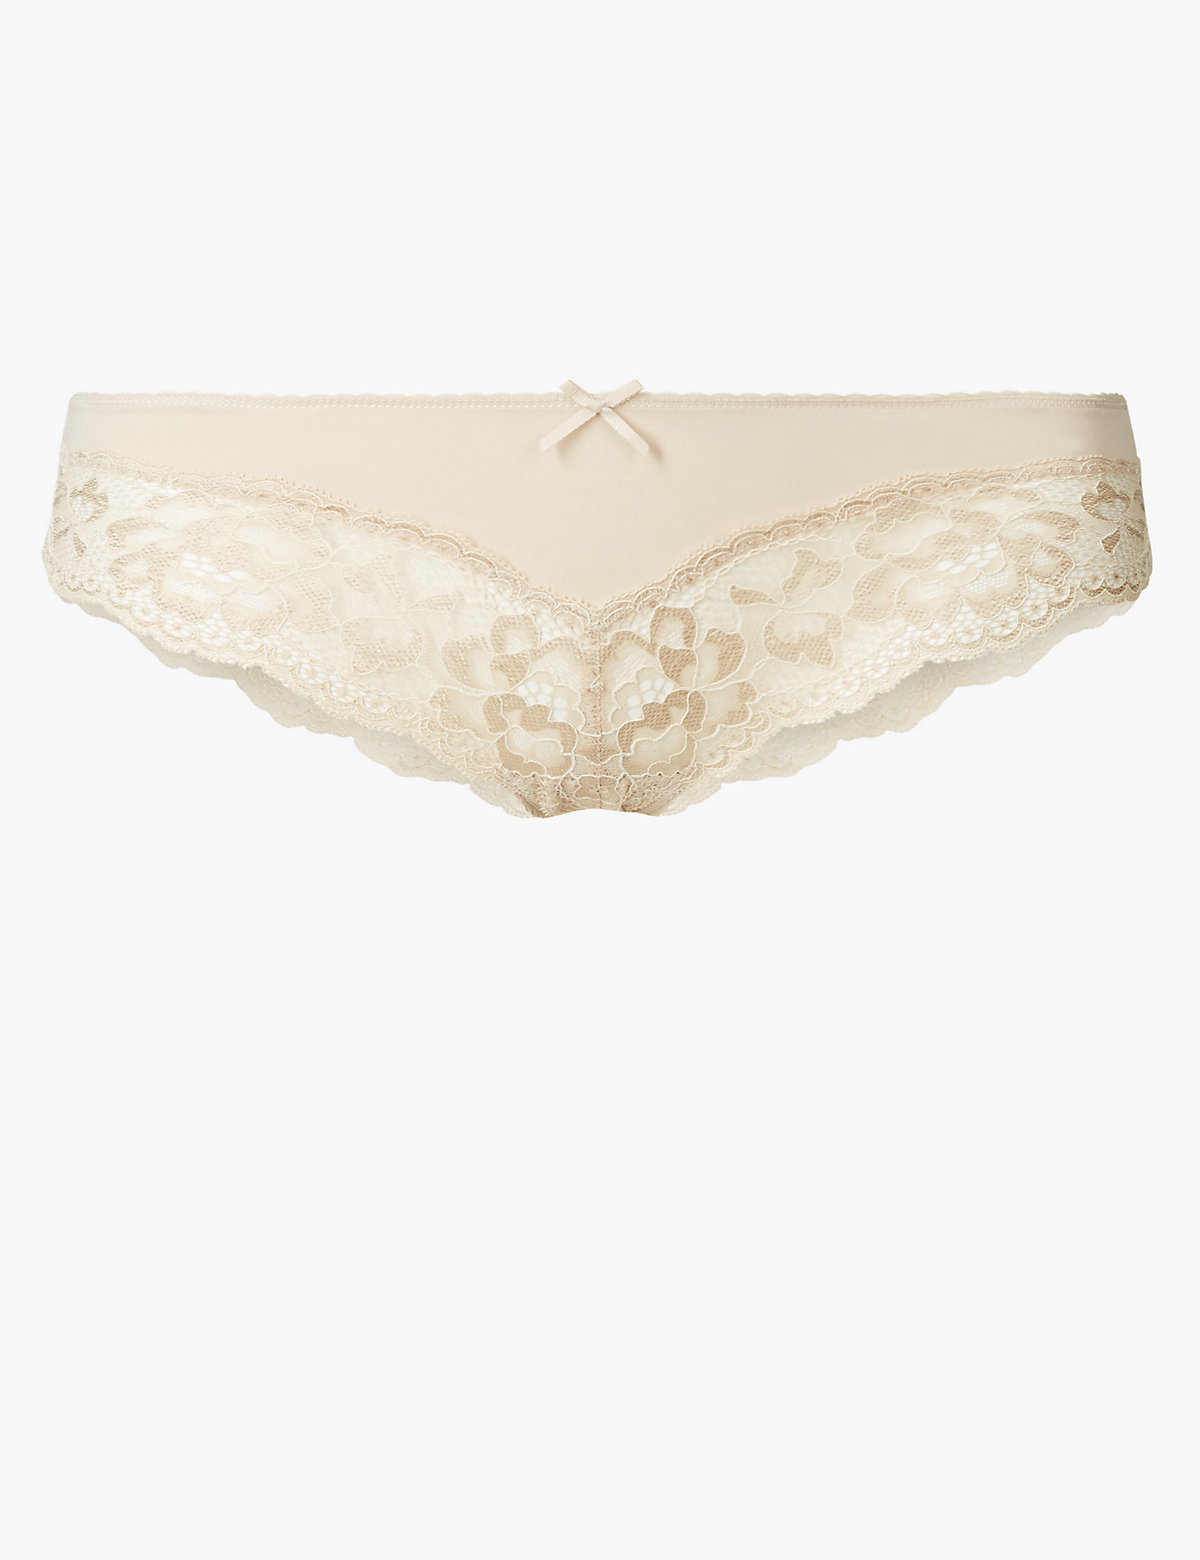 Image of M&S Collection Brazilian Knickers